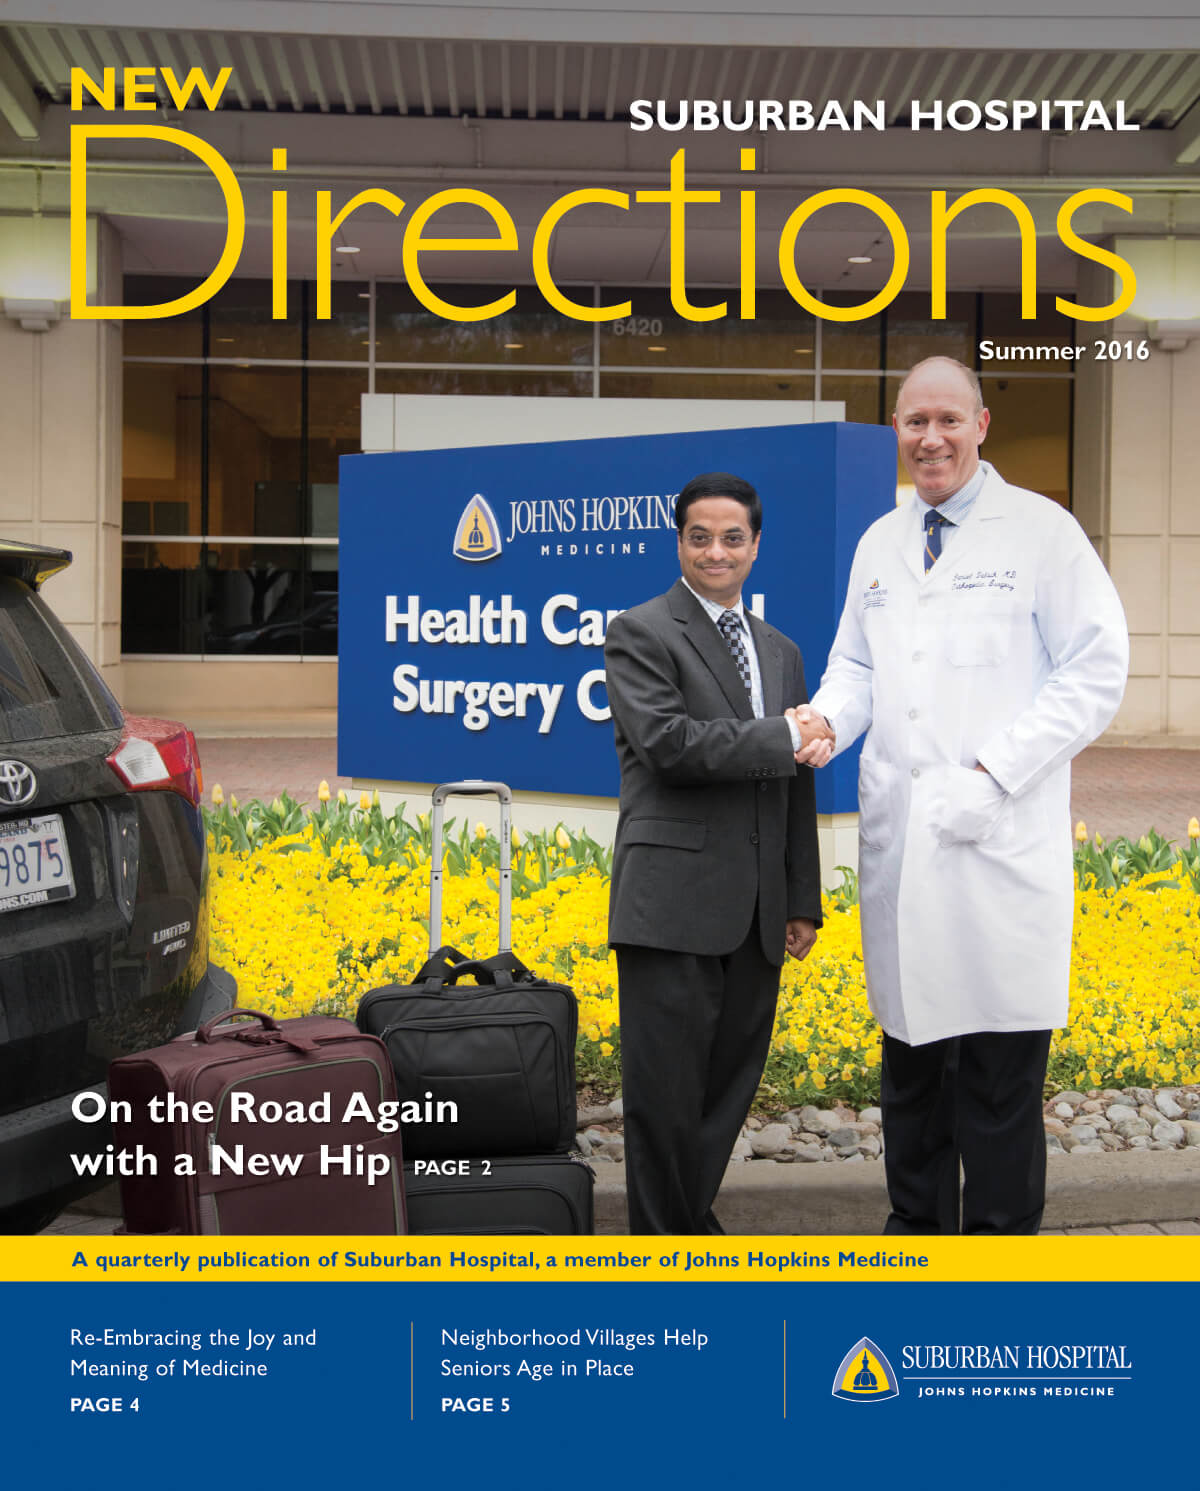 Cover of Summer 2016 New Directions